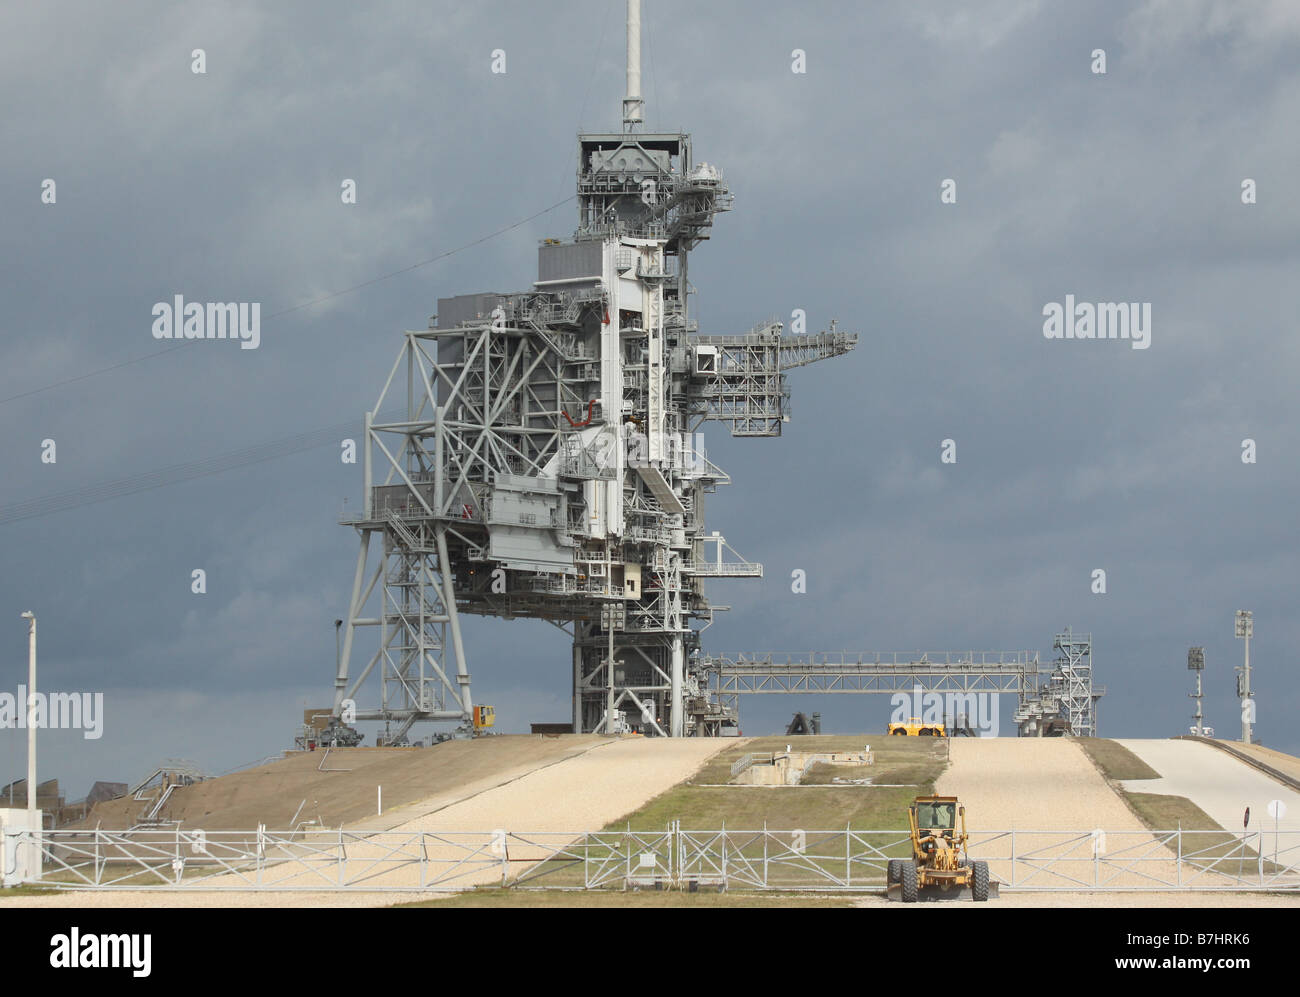 NASA Launch Pad 39B Kennedy Space Center Cape Canaveral road - Stock Image